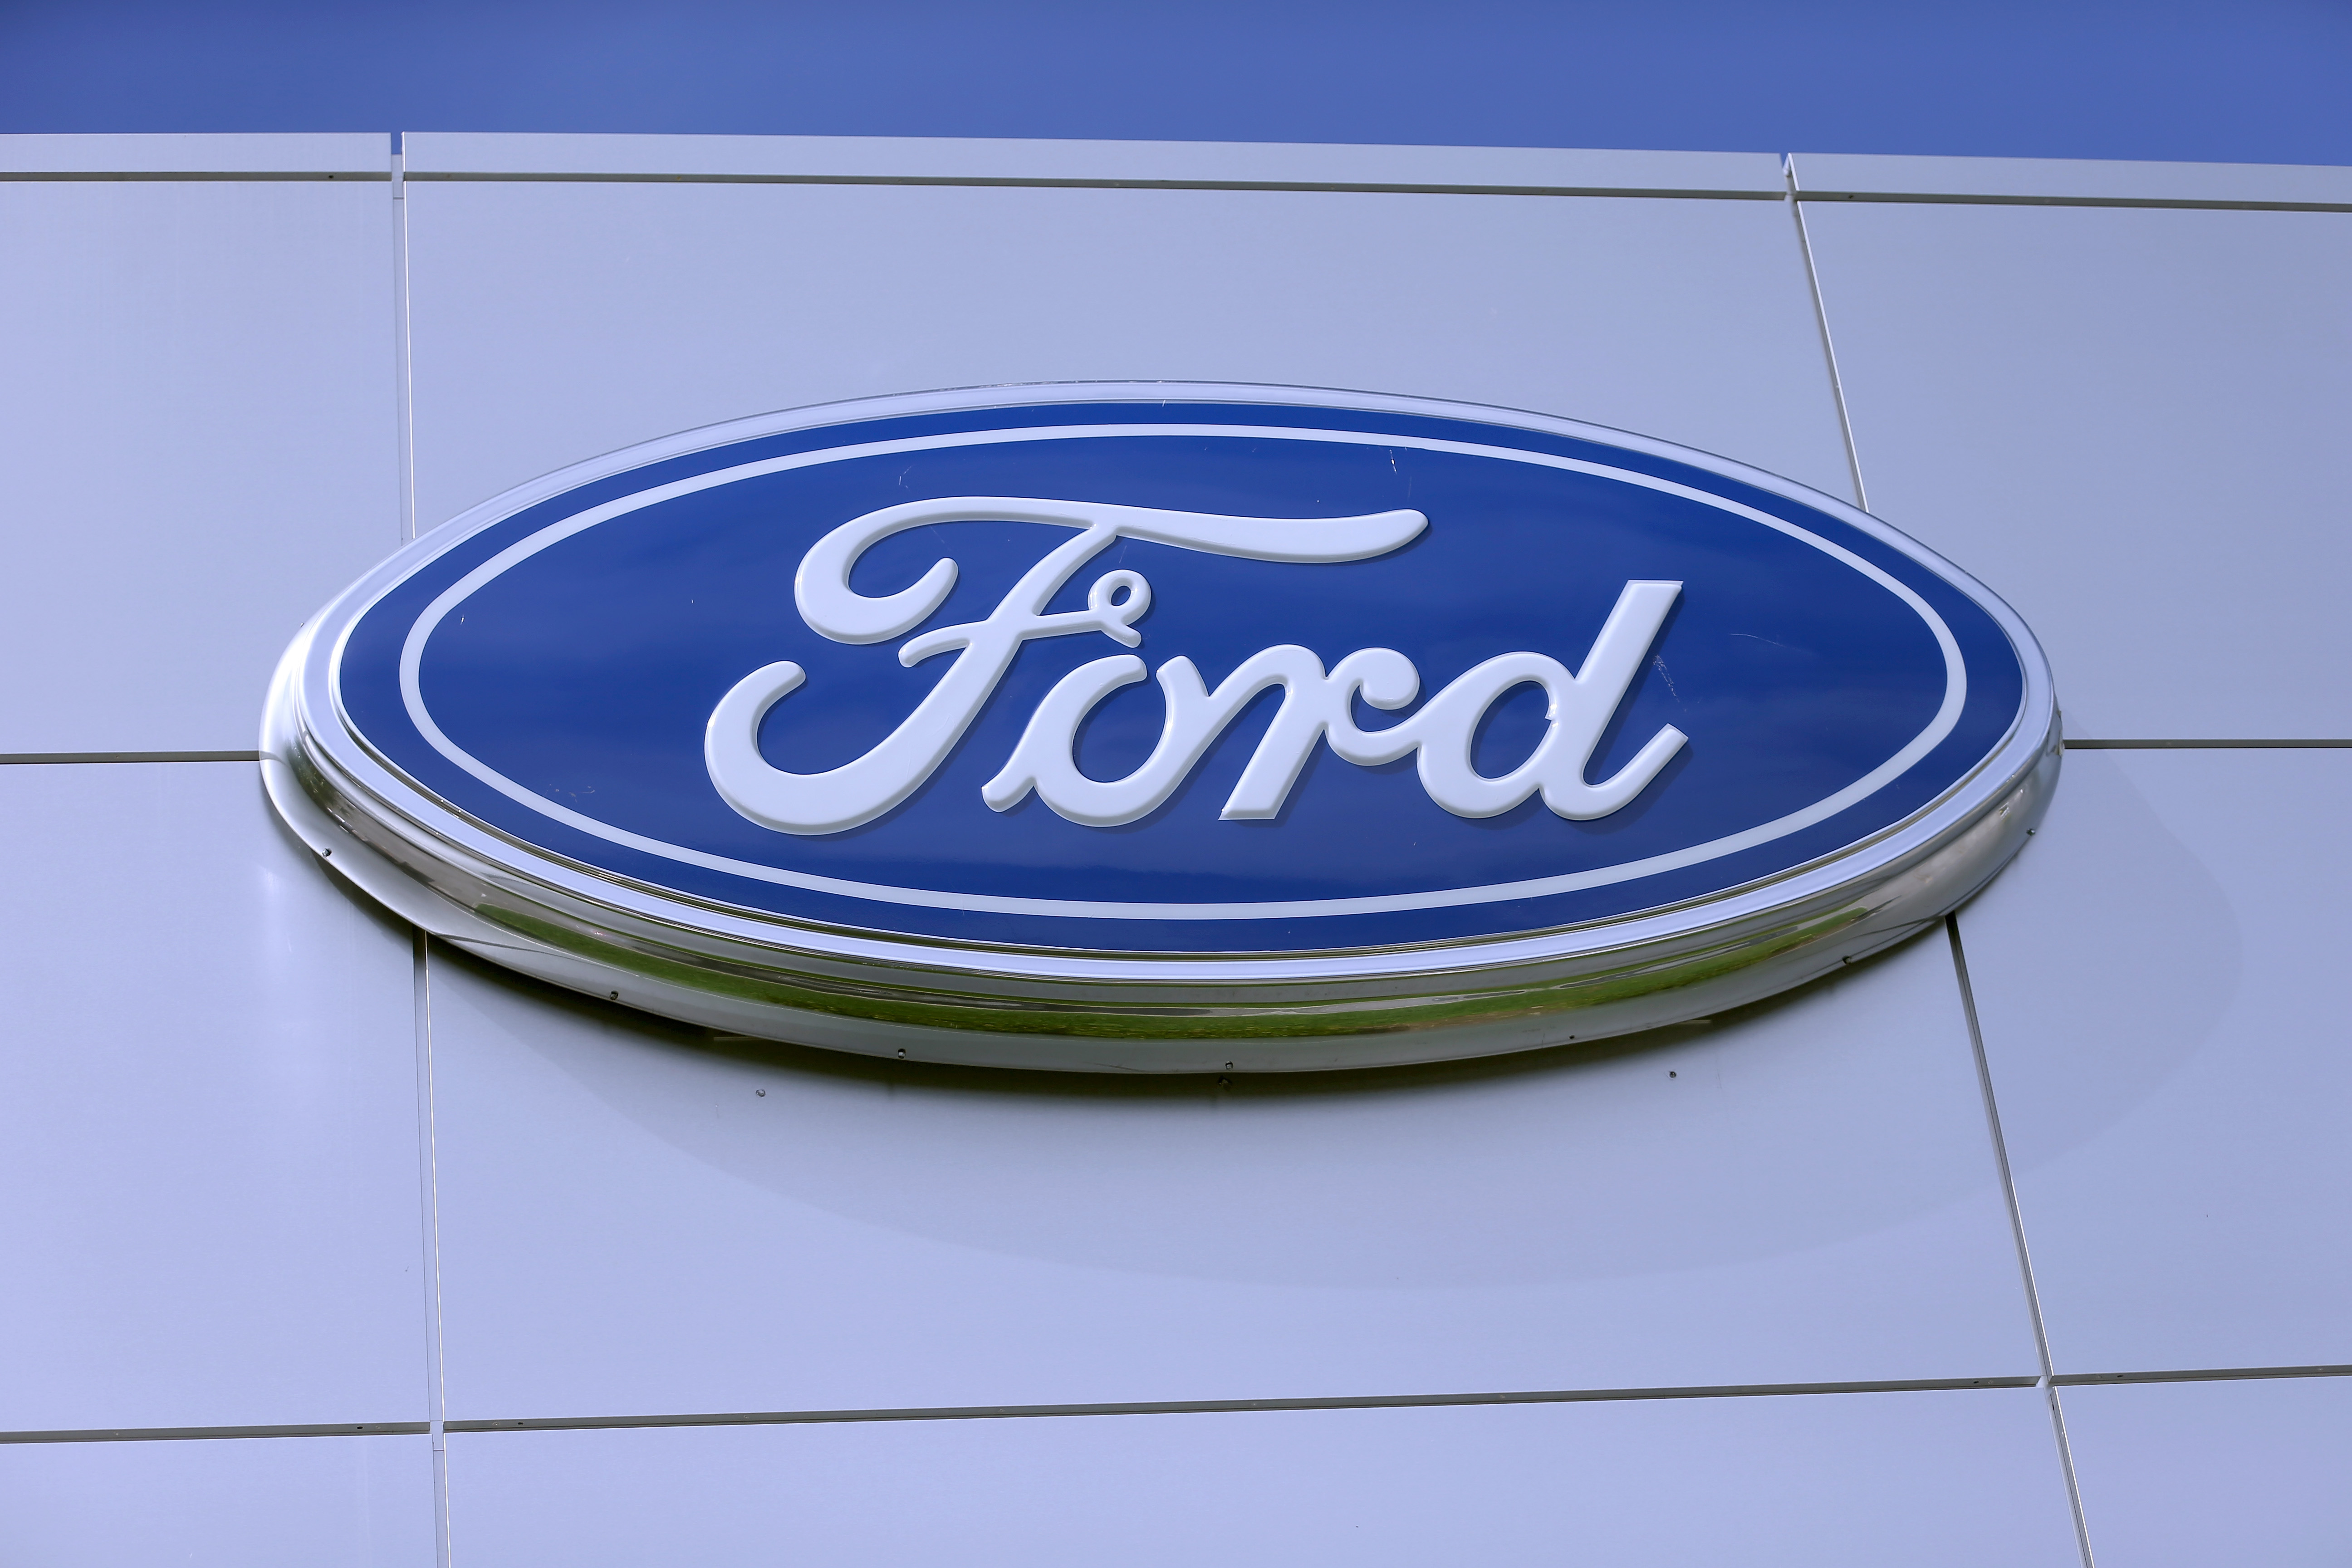 <strong>Ford</strong> Ford has benefitted from a stronger economic recovery in the U.S., as many drivers look to replace their aging vehicles. Executives also expect it to be profitable in North America this year, albeit at a lower level than in 2013. In Europe, where Ford has closed factories and cut thousands of jobs, the company expects to report a narrower loss in 2014 and achieve profitability the following year. Worldwide, Ford's 2013 revenue increased 10% from the previous year to $146.9 billion, while profits climbed 26%.